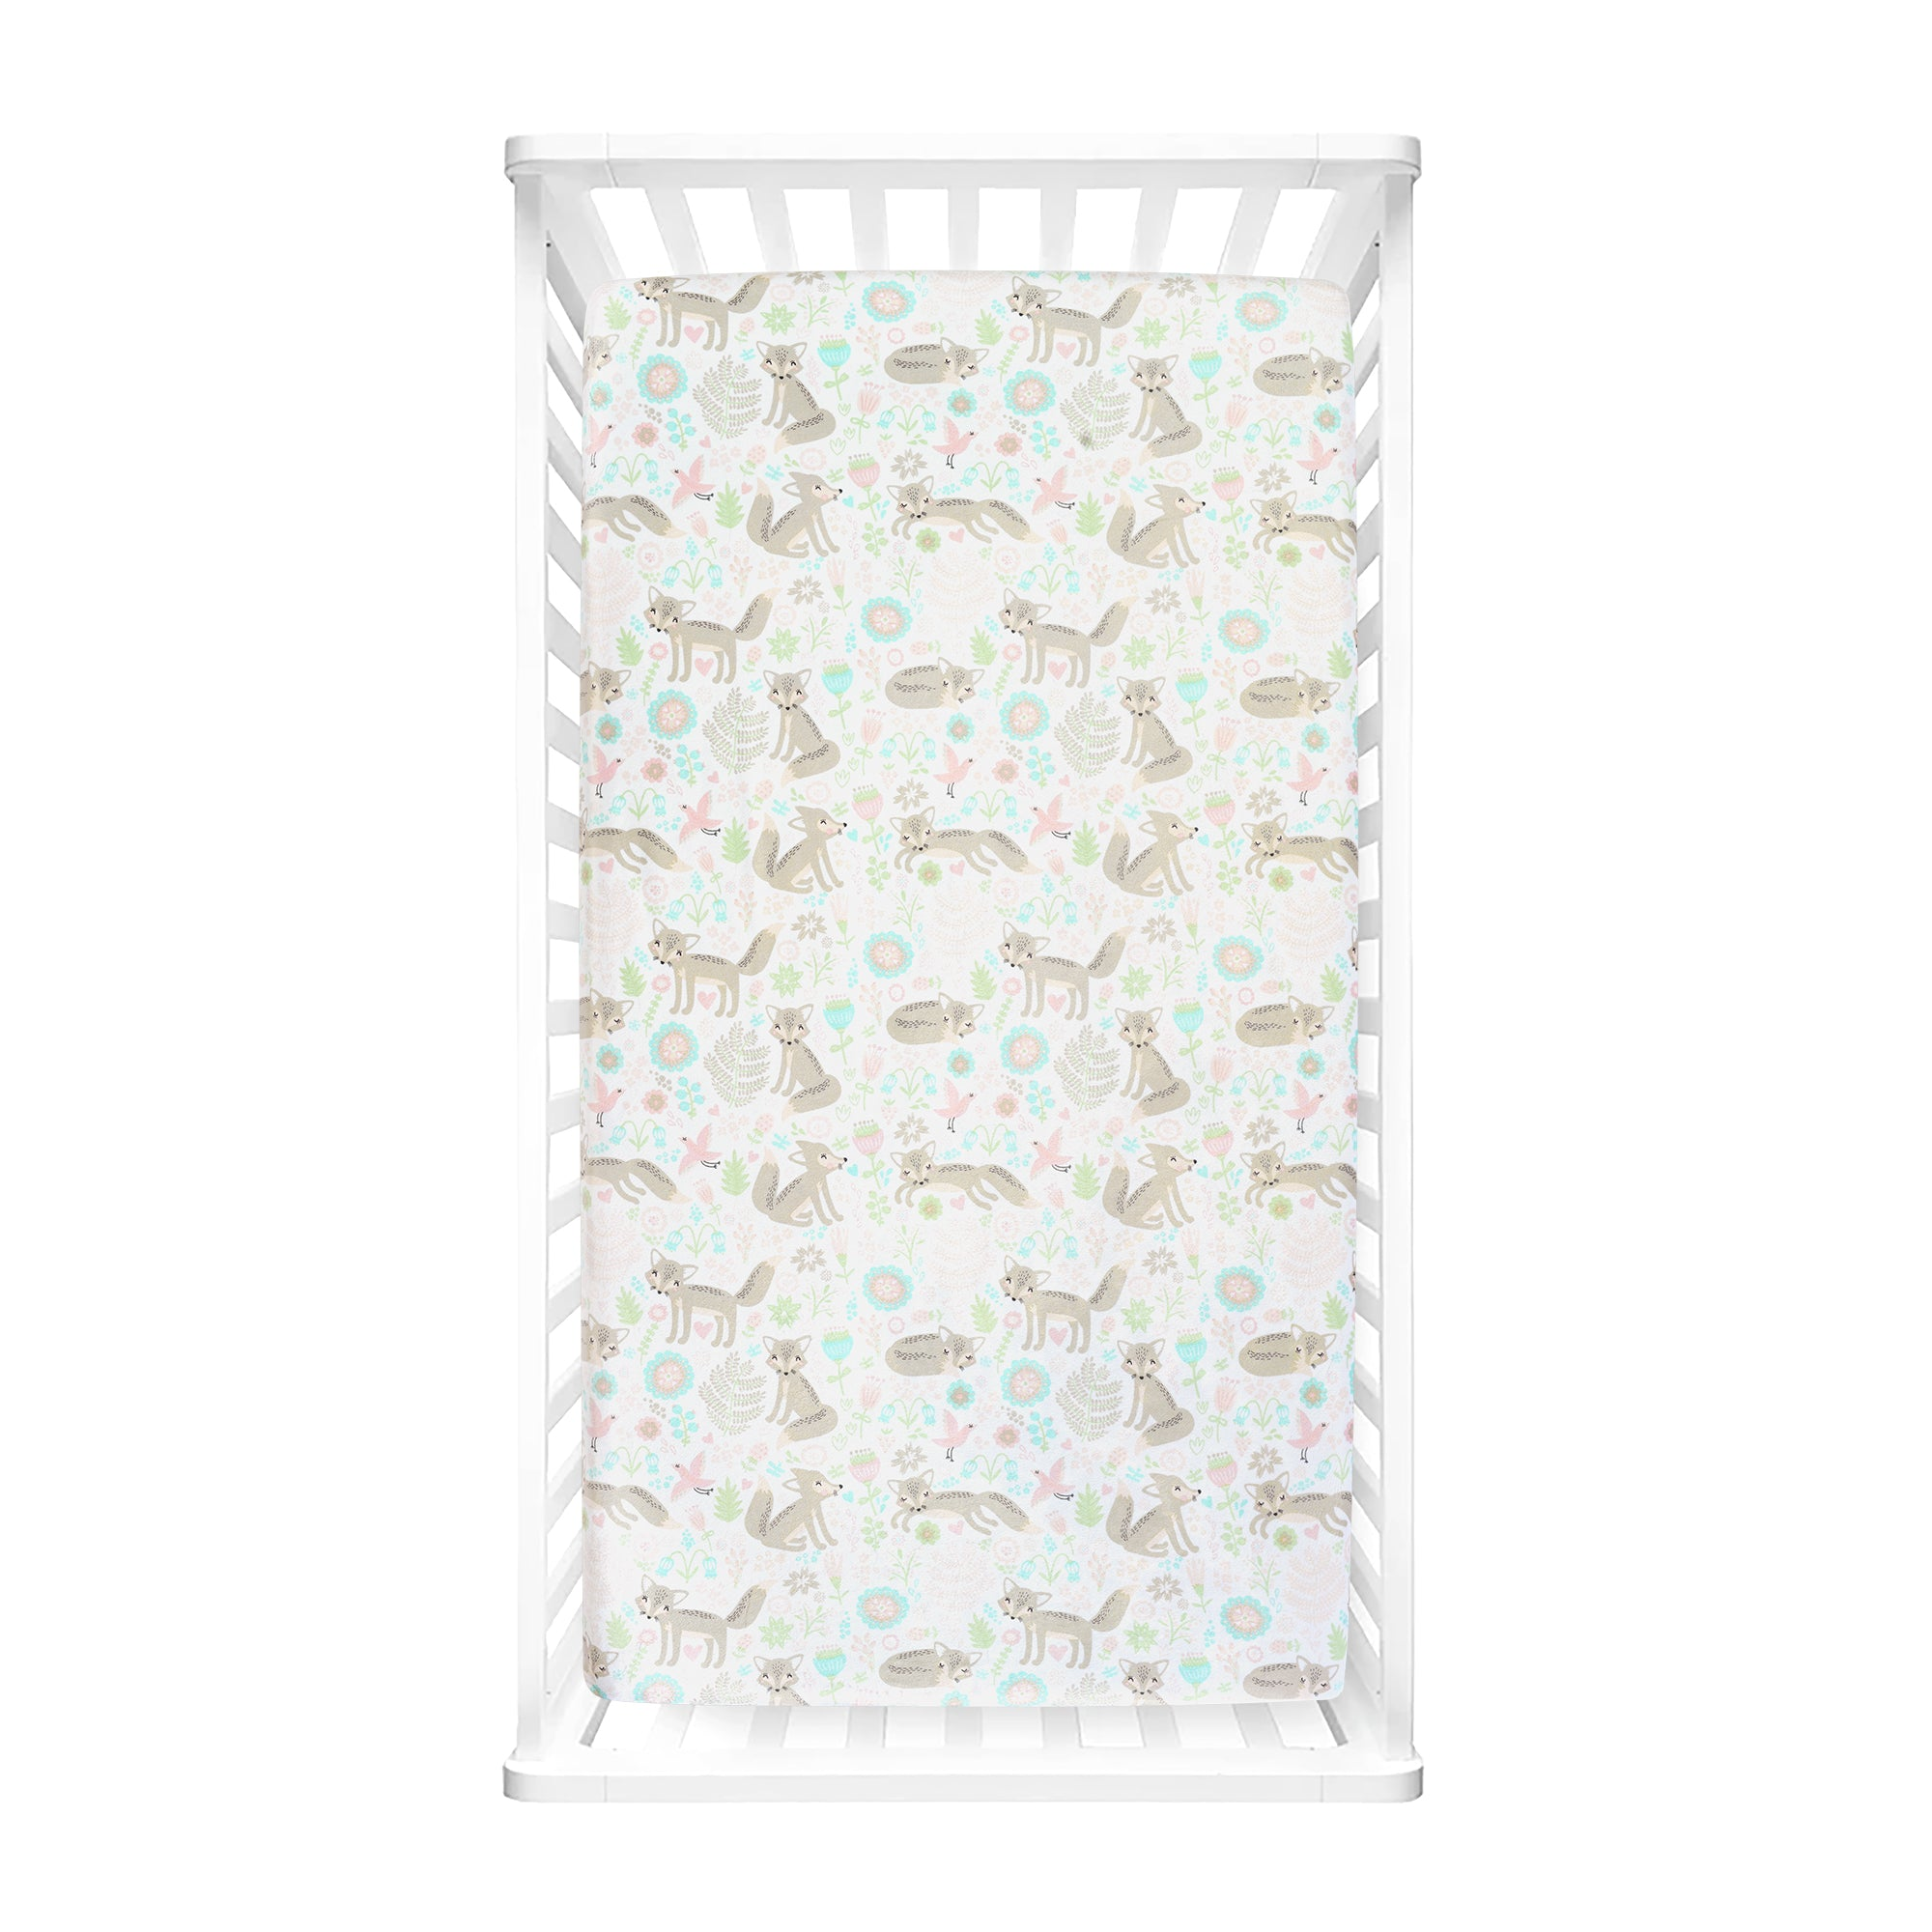 Pixie Fox Micro Mink Fitted Crib Sheet 2 Pack Set